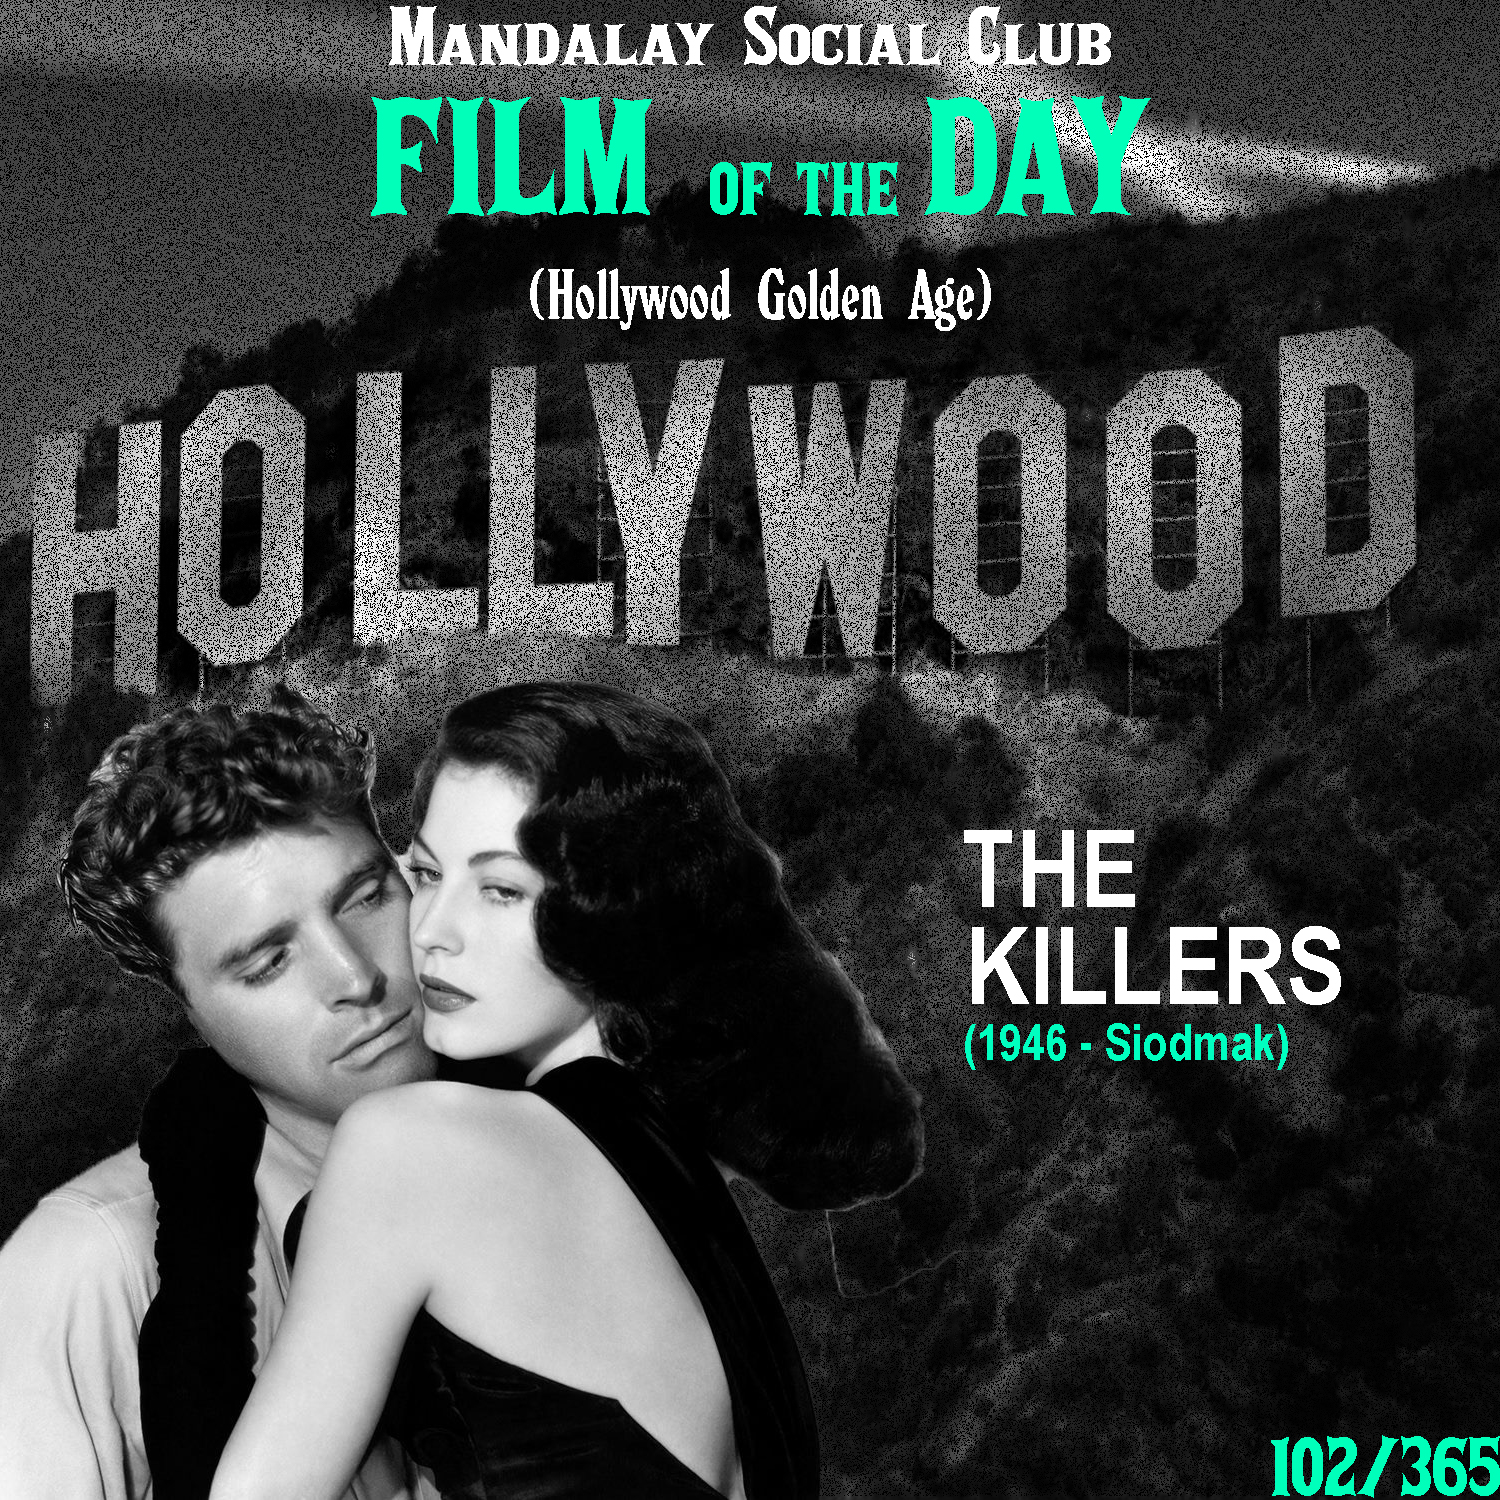 The Killers     (dir. Robert Siodmak)   Burt Lancaster was one of the biggest names in the Golden Age of Hollywood and he got his start right here in 1946 with Robert Siodmak's  The Killers .  Lancaster stars as The Swede, who in the opening minutes of the film is gunned down by two killers on the hunt for them. Employing a flashback approach similar to  Citizen Kane,  a PI investigating the case in the wake of an insurance policy taken out on The Swede, begins to uncover The Swede's messy past that led to him being killed all alone in his bed… Ava Garner, another classical Hollywood legend, got her first noticed role under Siodmak in  The Killers .  While  The Killers  may be more well recognized as staple in the film noir genre, it still acted as an important piece of Hollywood's Golden Age. Lancaster and Garner would end up being some of the biggest stars of the era, the latter even marrying Frank Sinatra for some time. If it wasn't for  The Killers , the Golden Age's identity would be nowhere close to where it is now!    4/5     WATCH: YouTube